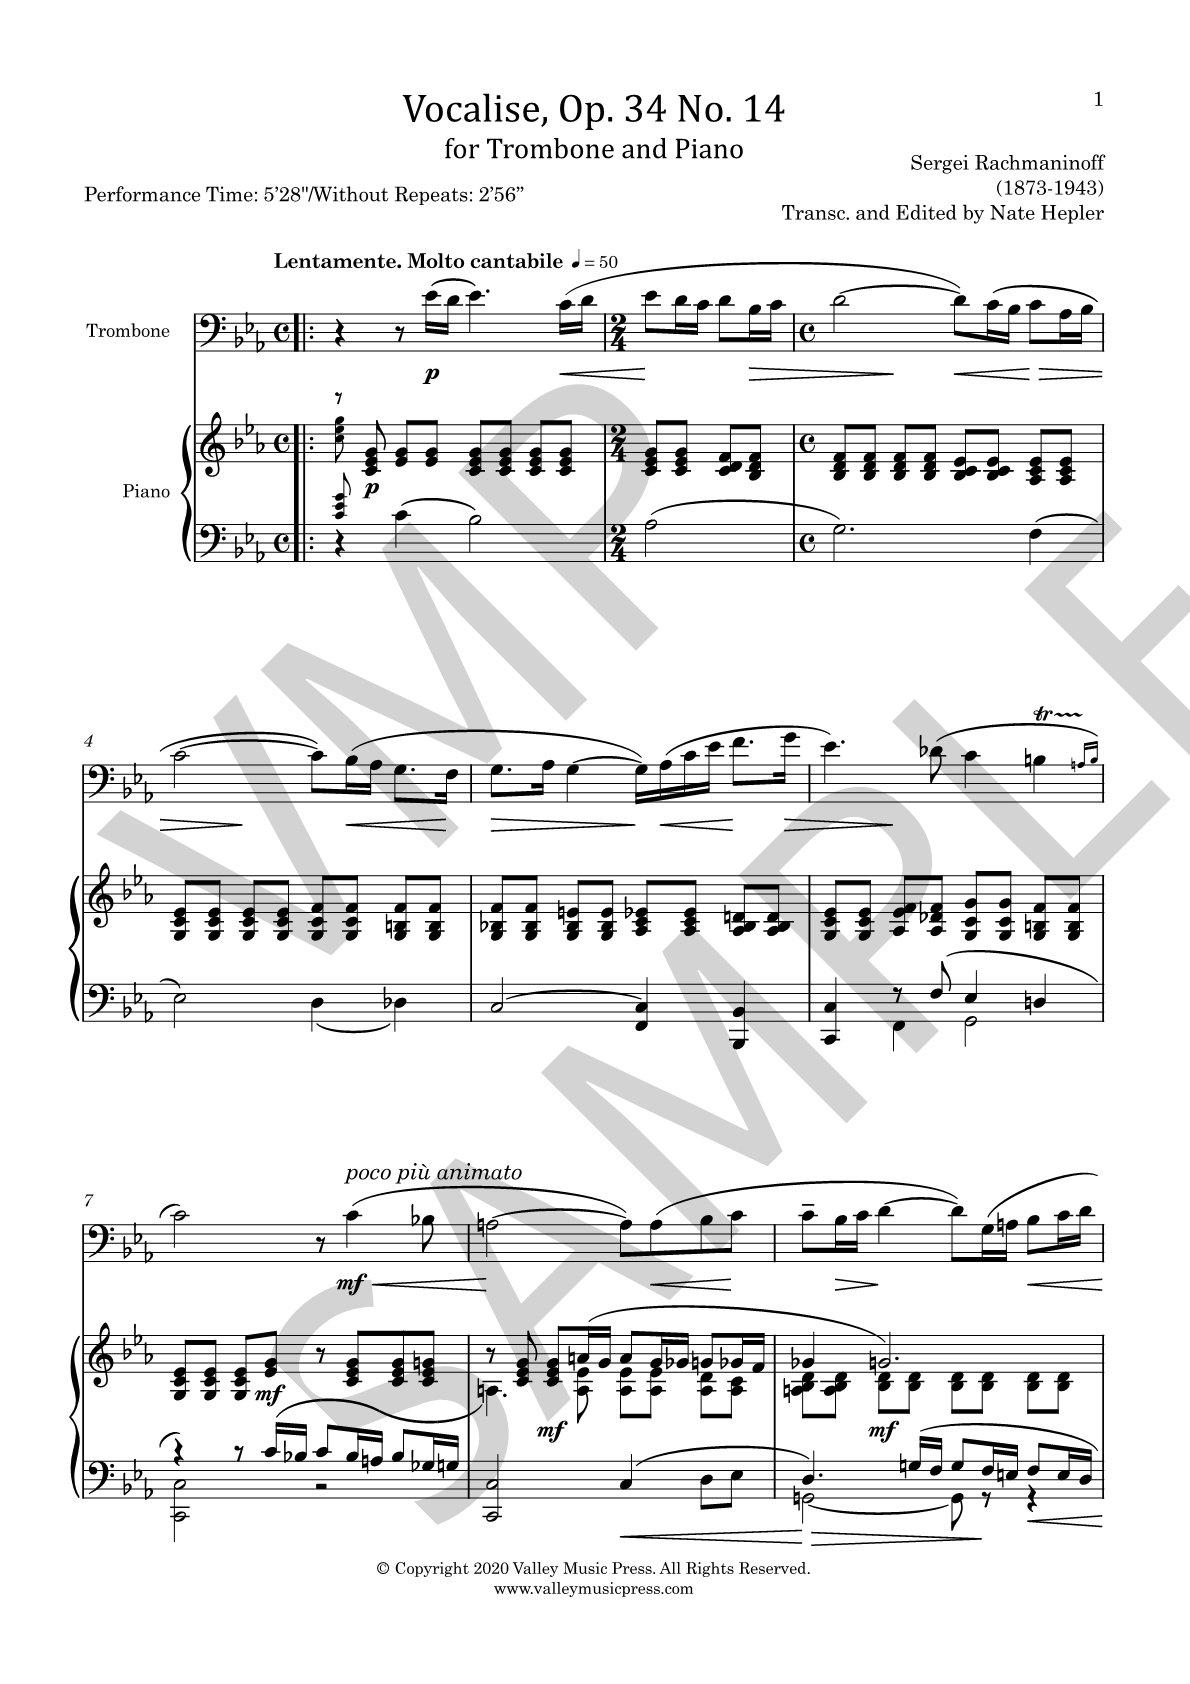 Rachmaninoff - Vocalise Op. 34 No. 14 (Trb & Piano) - Click Image to Close